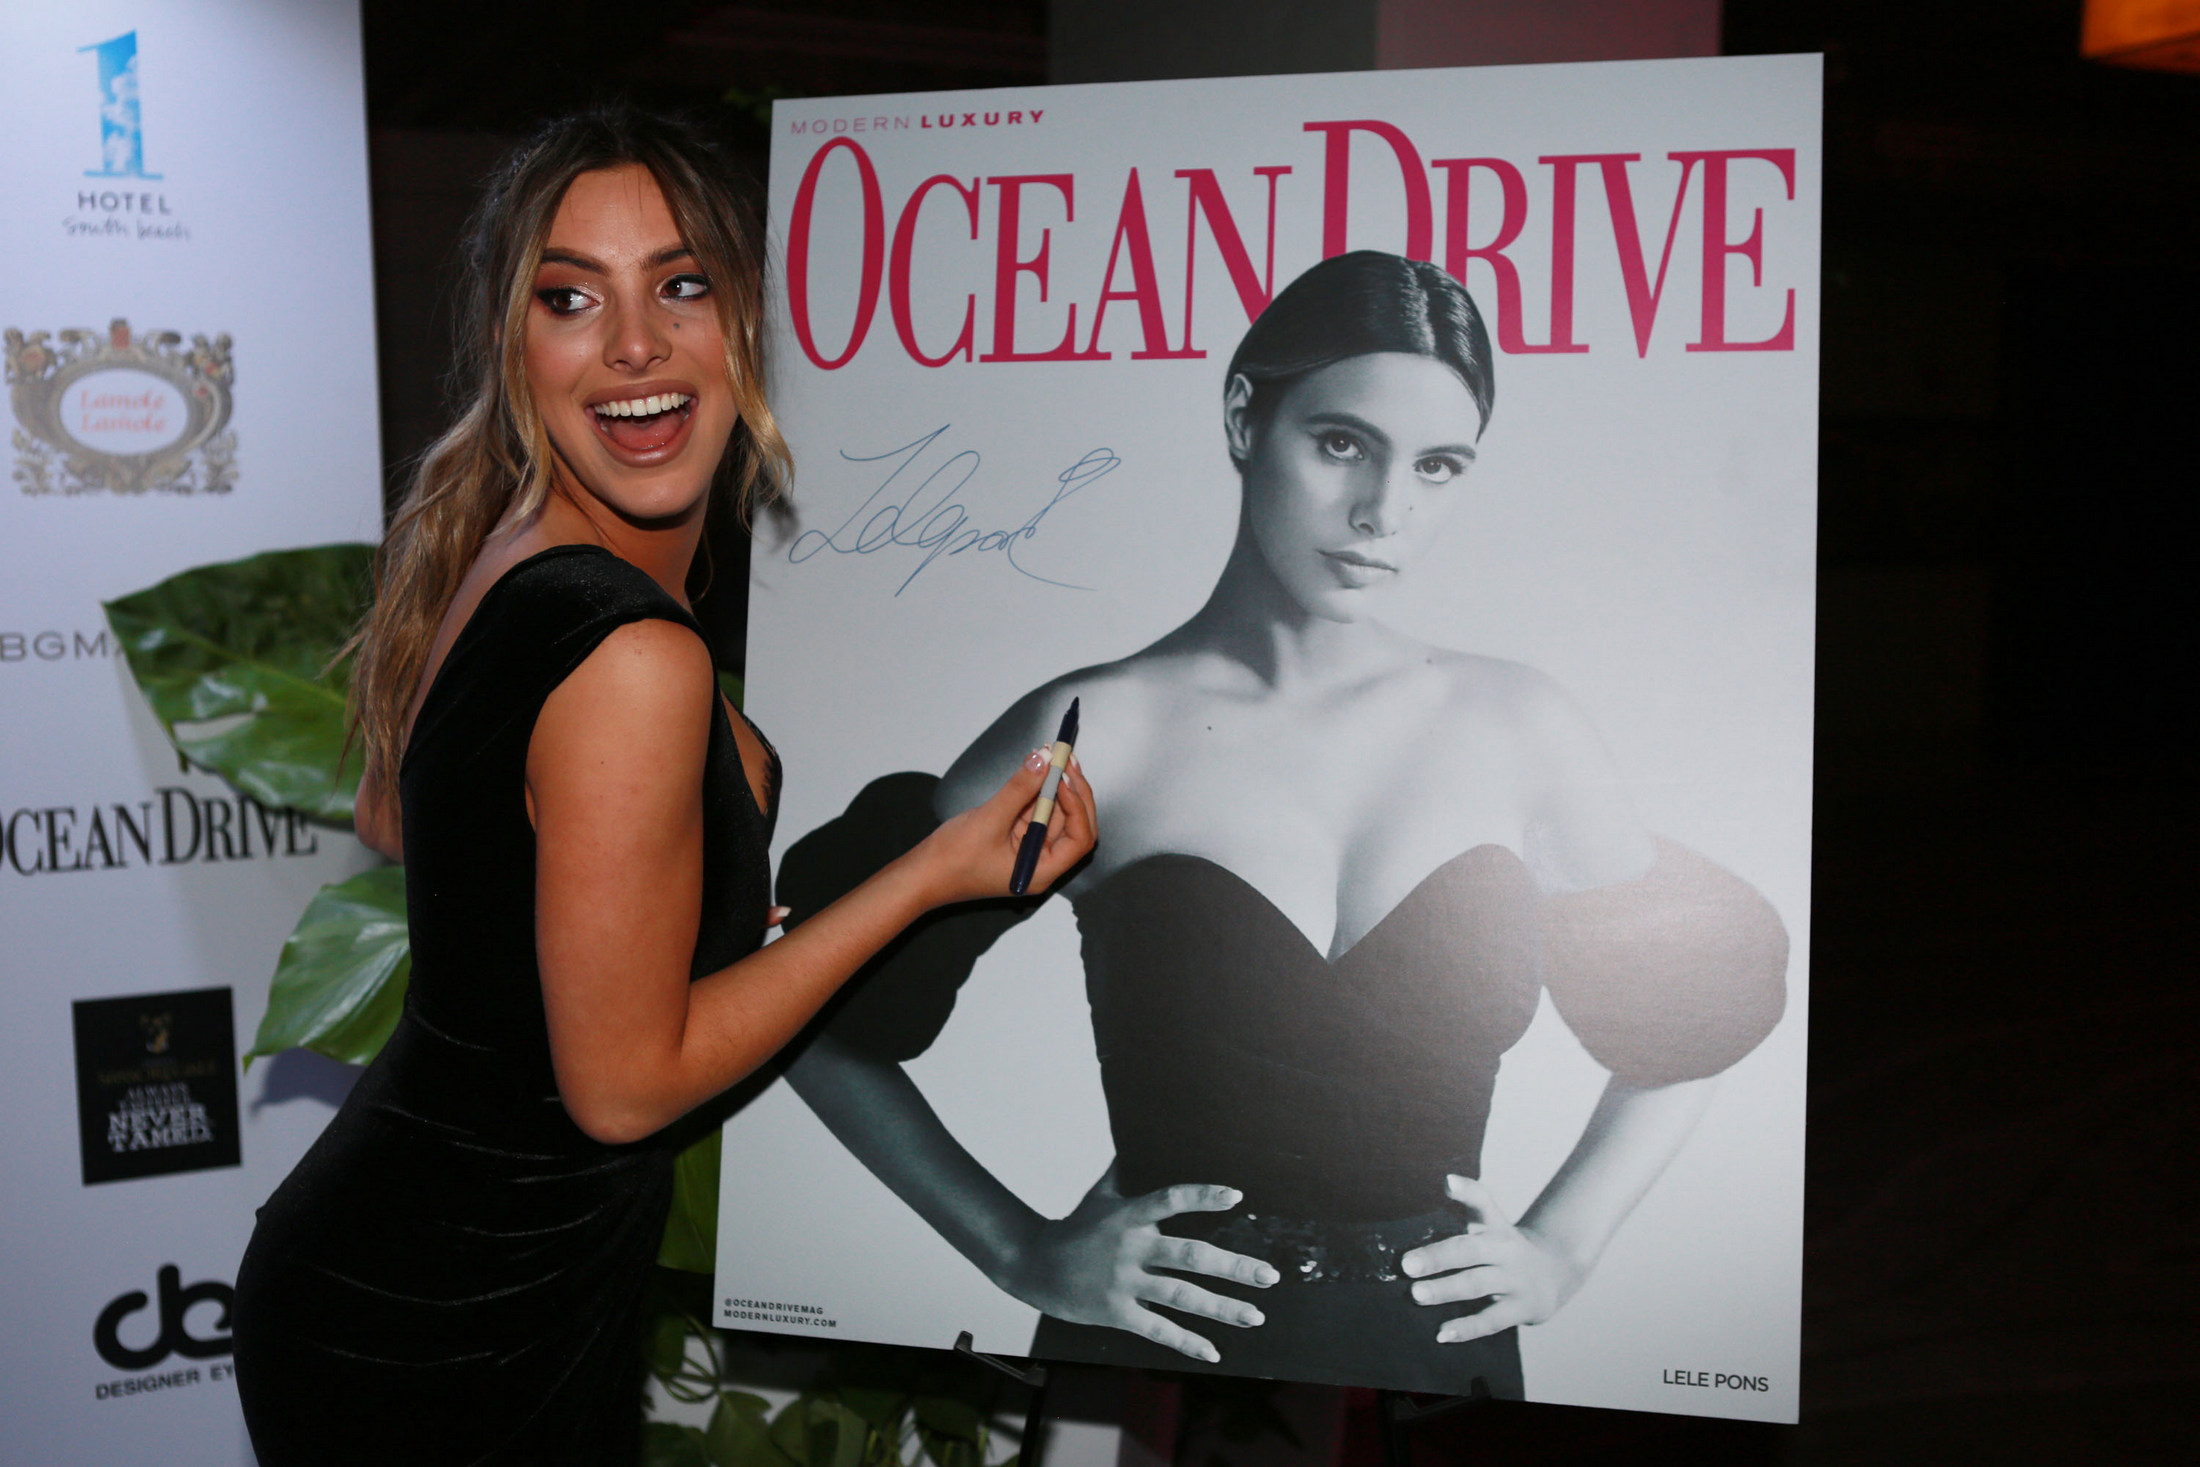 Ocean Drive Magazine kicks off Art Basel 2018 with Lele Pons at the 1 Hotel